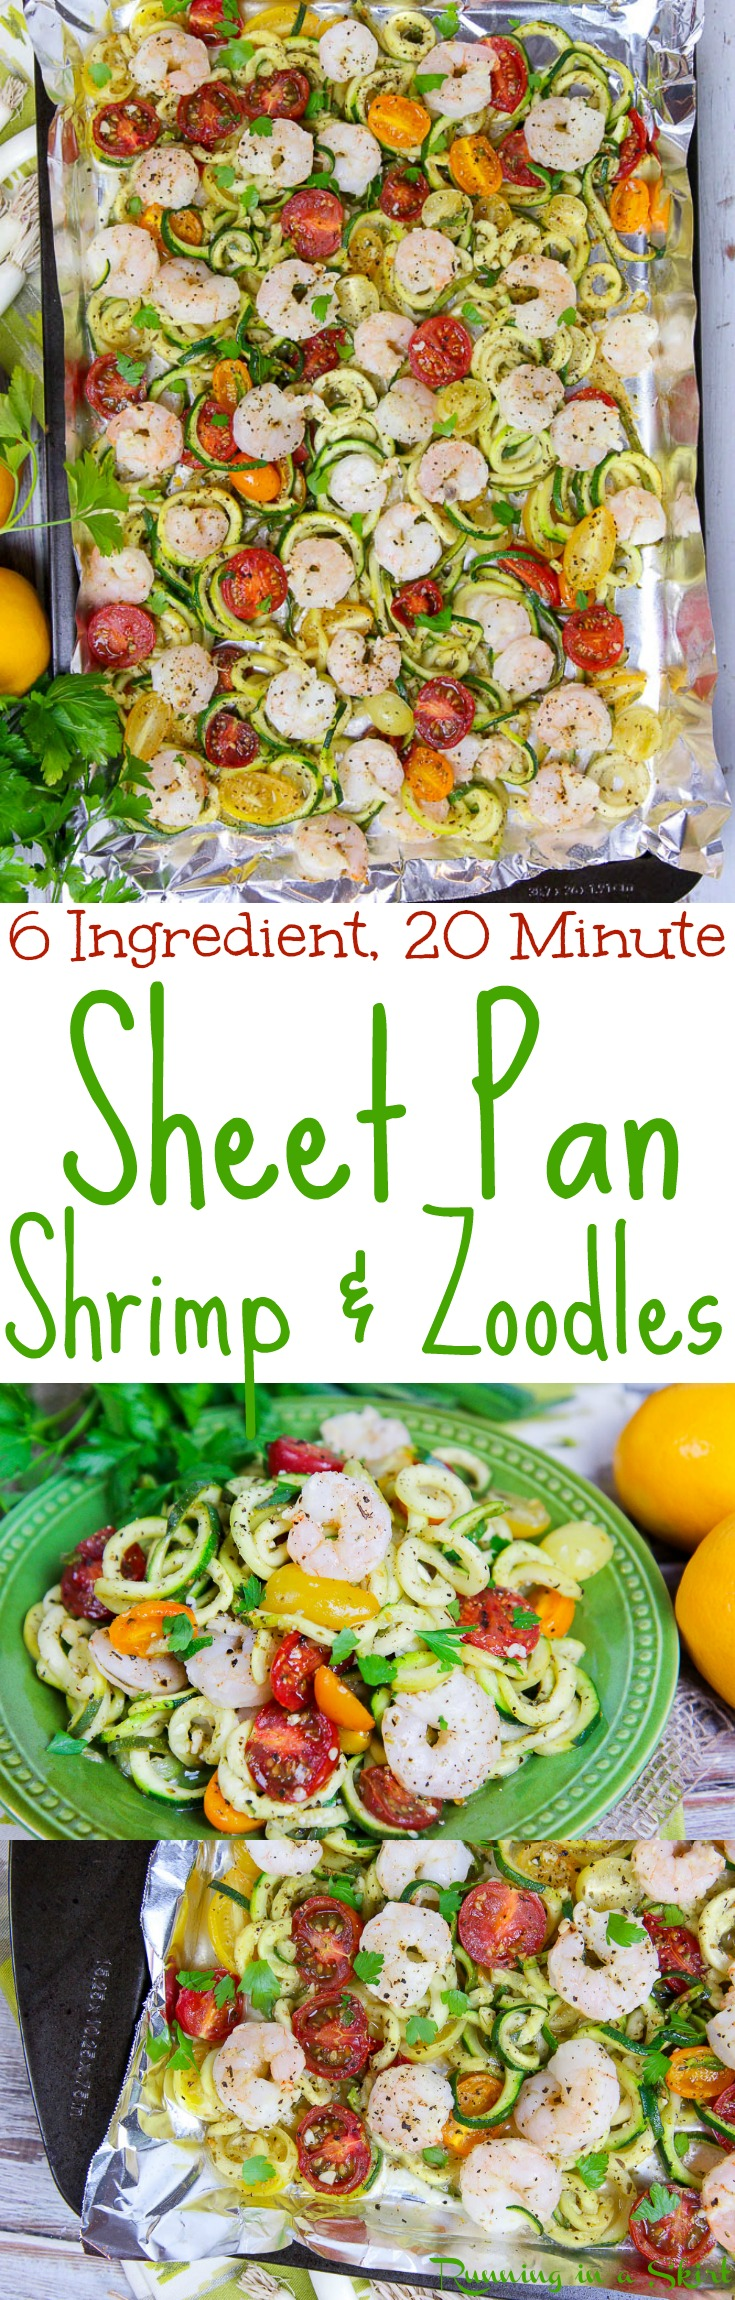 Healthy Sheet Pan Shrimp and Zoodles recipe - Takes only 20 minutes! Low Carb, Whole 30, paleo, 21 Day Fix, Gluten Free and Clean Eating. The easiest recipes for weeknight dinners and meals - better than a one pot meal. Uses zucchini instead of pasta./ Running in a Skirt via @juliewunder